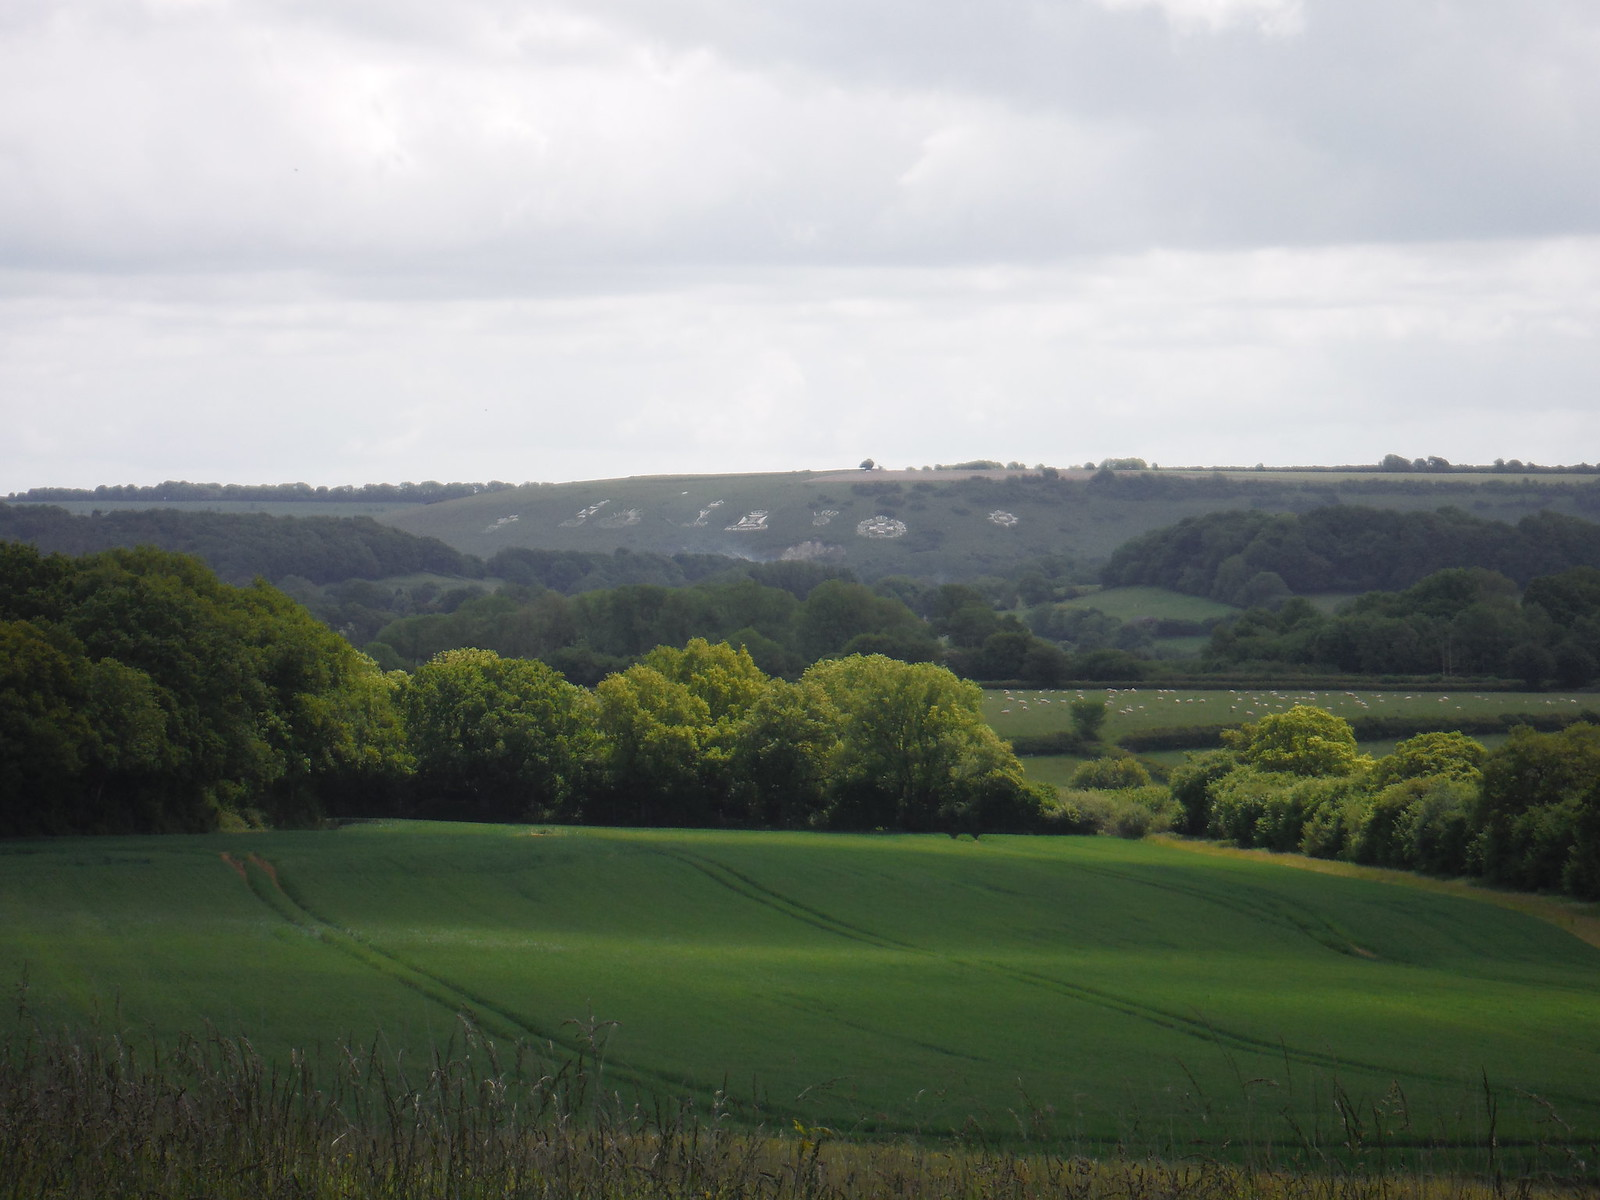 Fovant Badges far view SWC Walk 249 Tisbury Circular via Dinton and Fovant